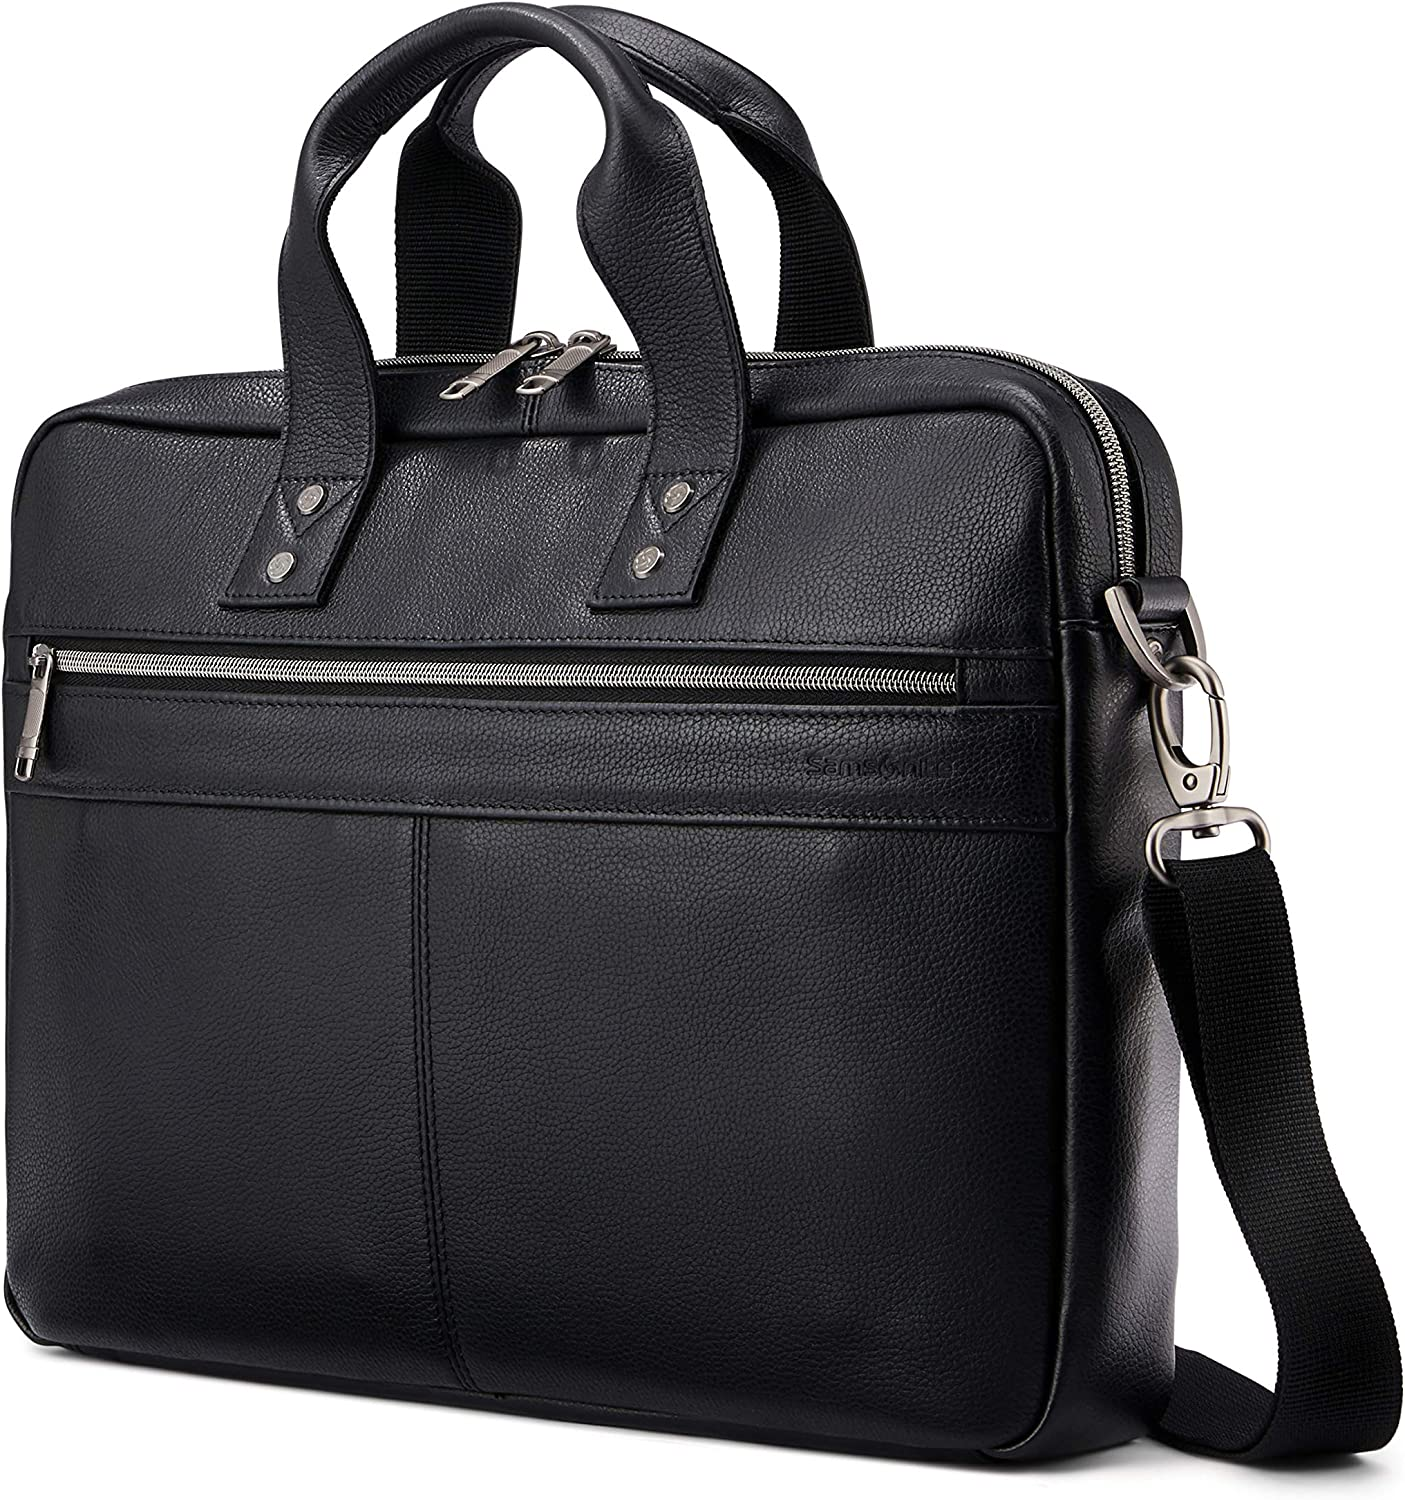 Samsonite Classic Leather Slim Brief, Black, One Size